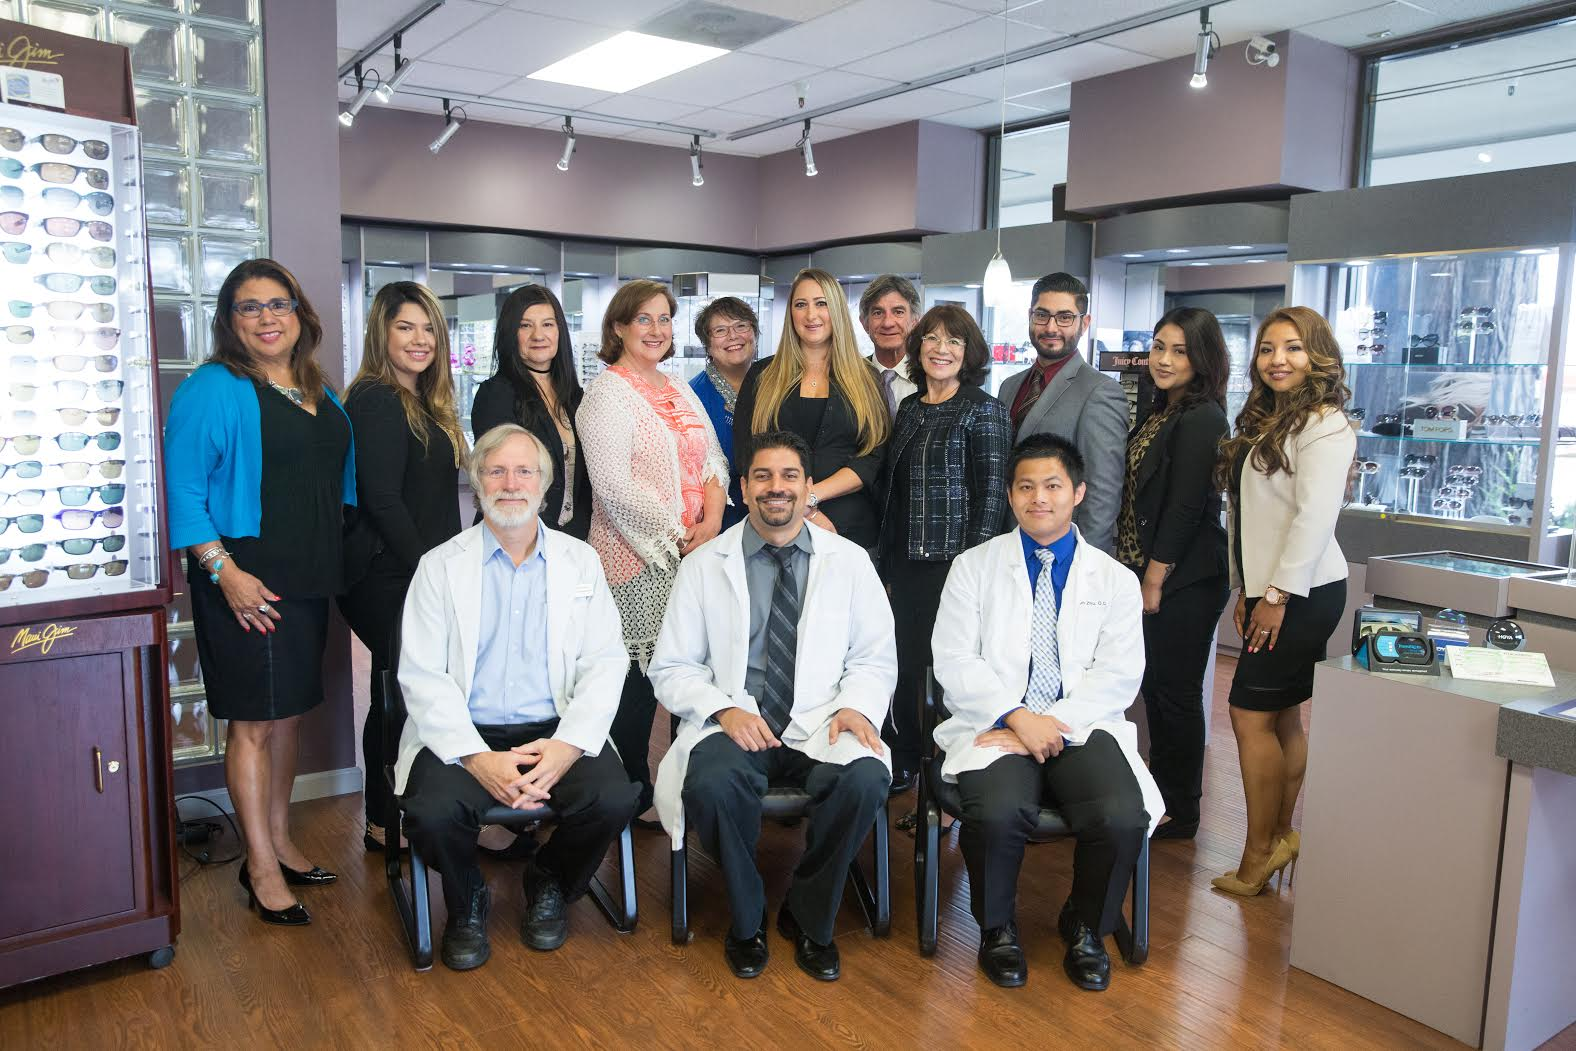 optometrists and staff at InSight Eyecare Optometry in Capitola and Scotts Valley